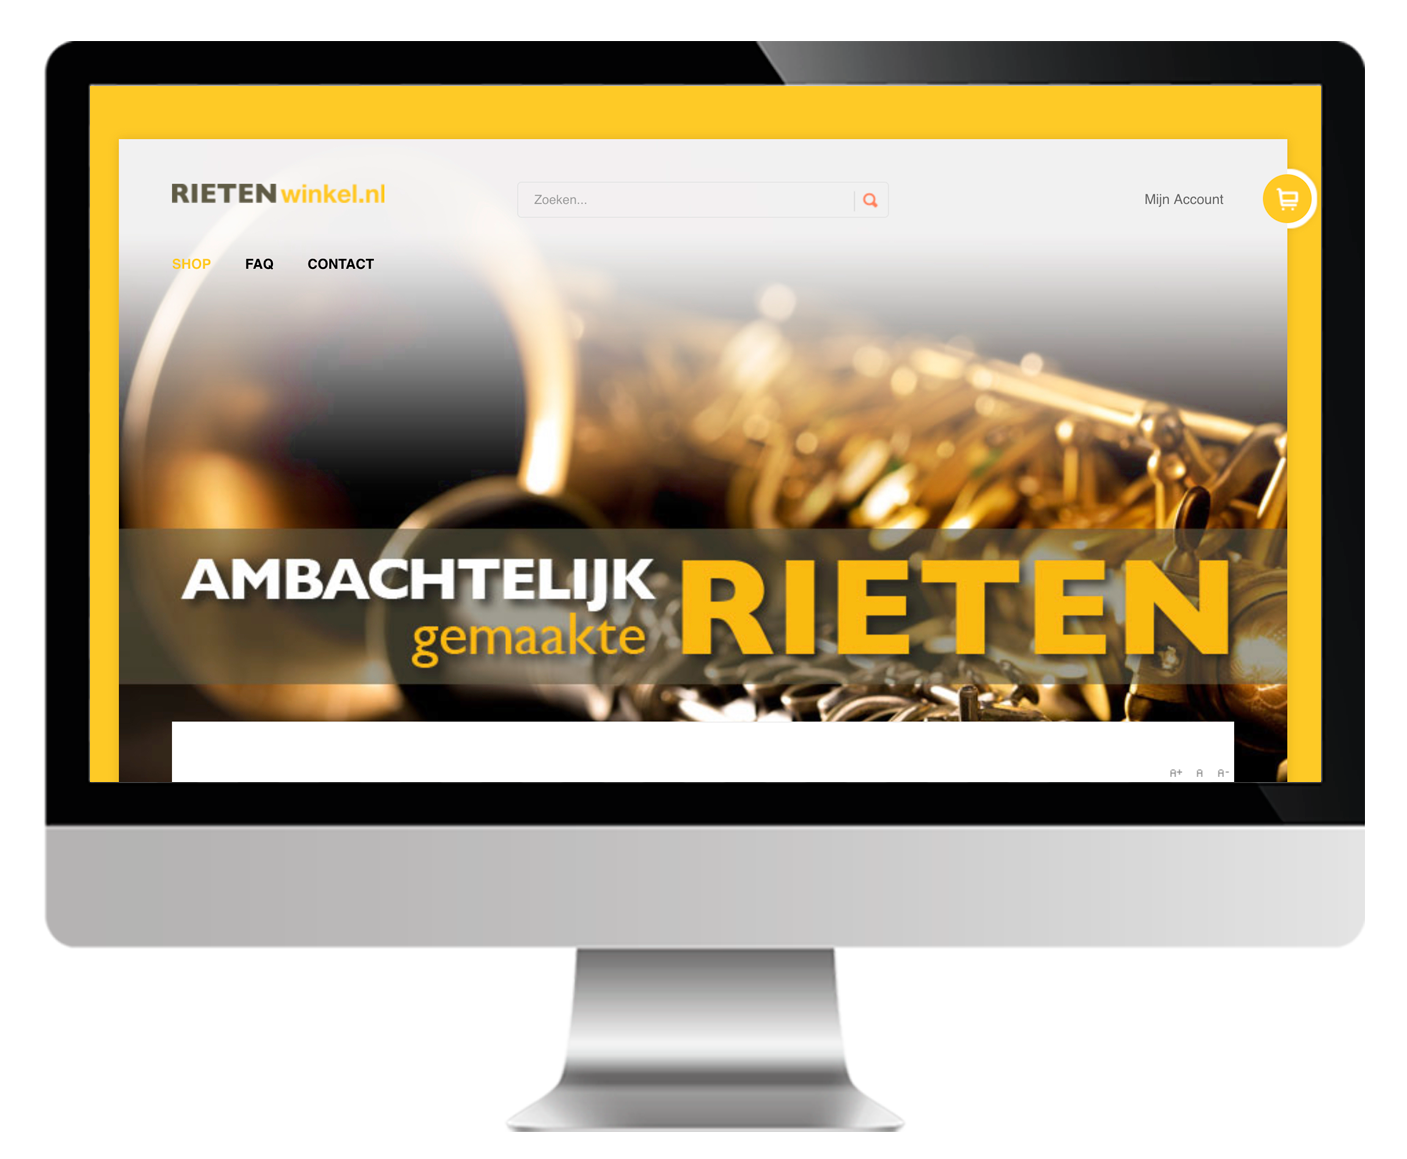 website-RIETENwinkel